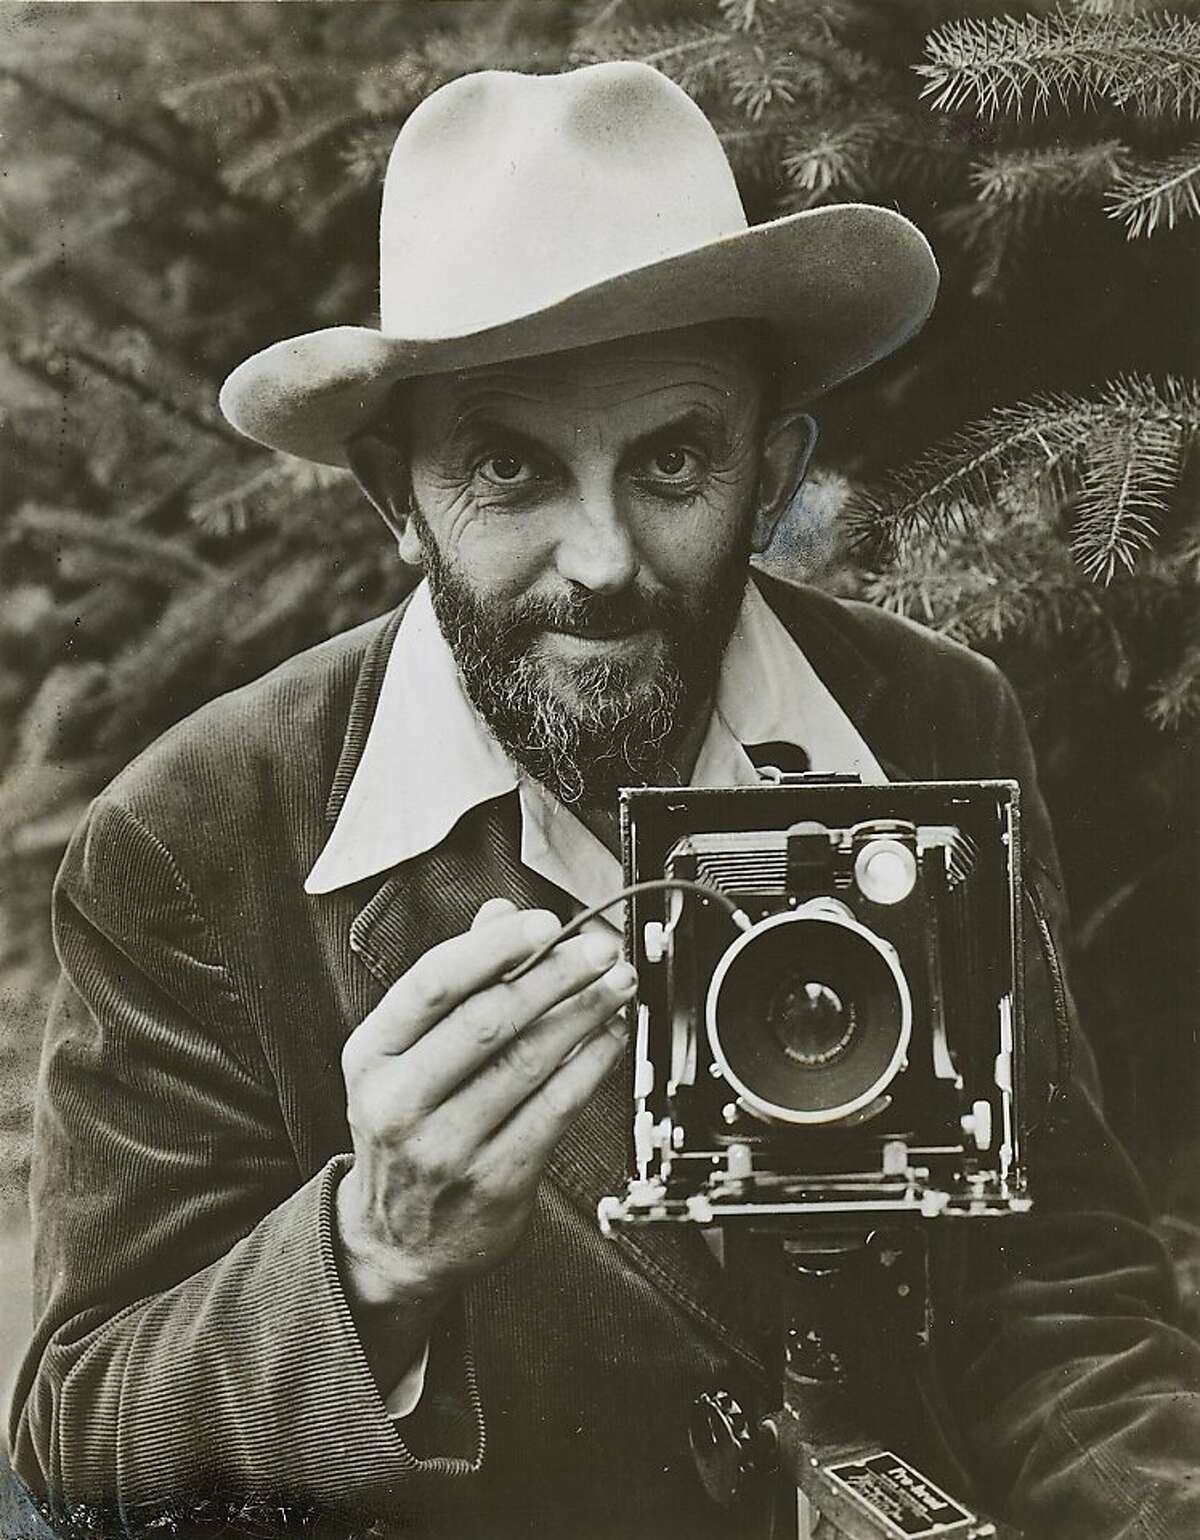 wayback19_PH.jpg 1948 - Ansel Adams in 1948. Houghton Mifflin Co. Chronicle File Ran on: 04-19-2009 Ansel Adams died in 1984. Ran on: 05-04-2009 Photographer Ansel Adams, shown in 1948, often used darkroom techniques to retune his images.